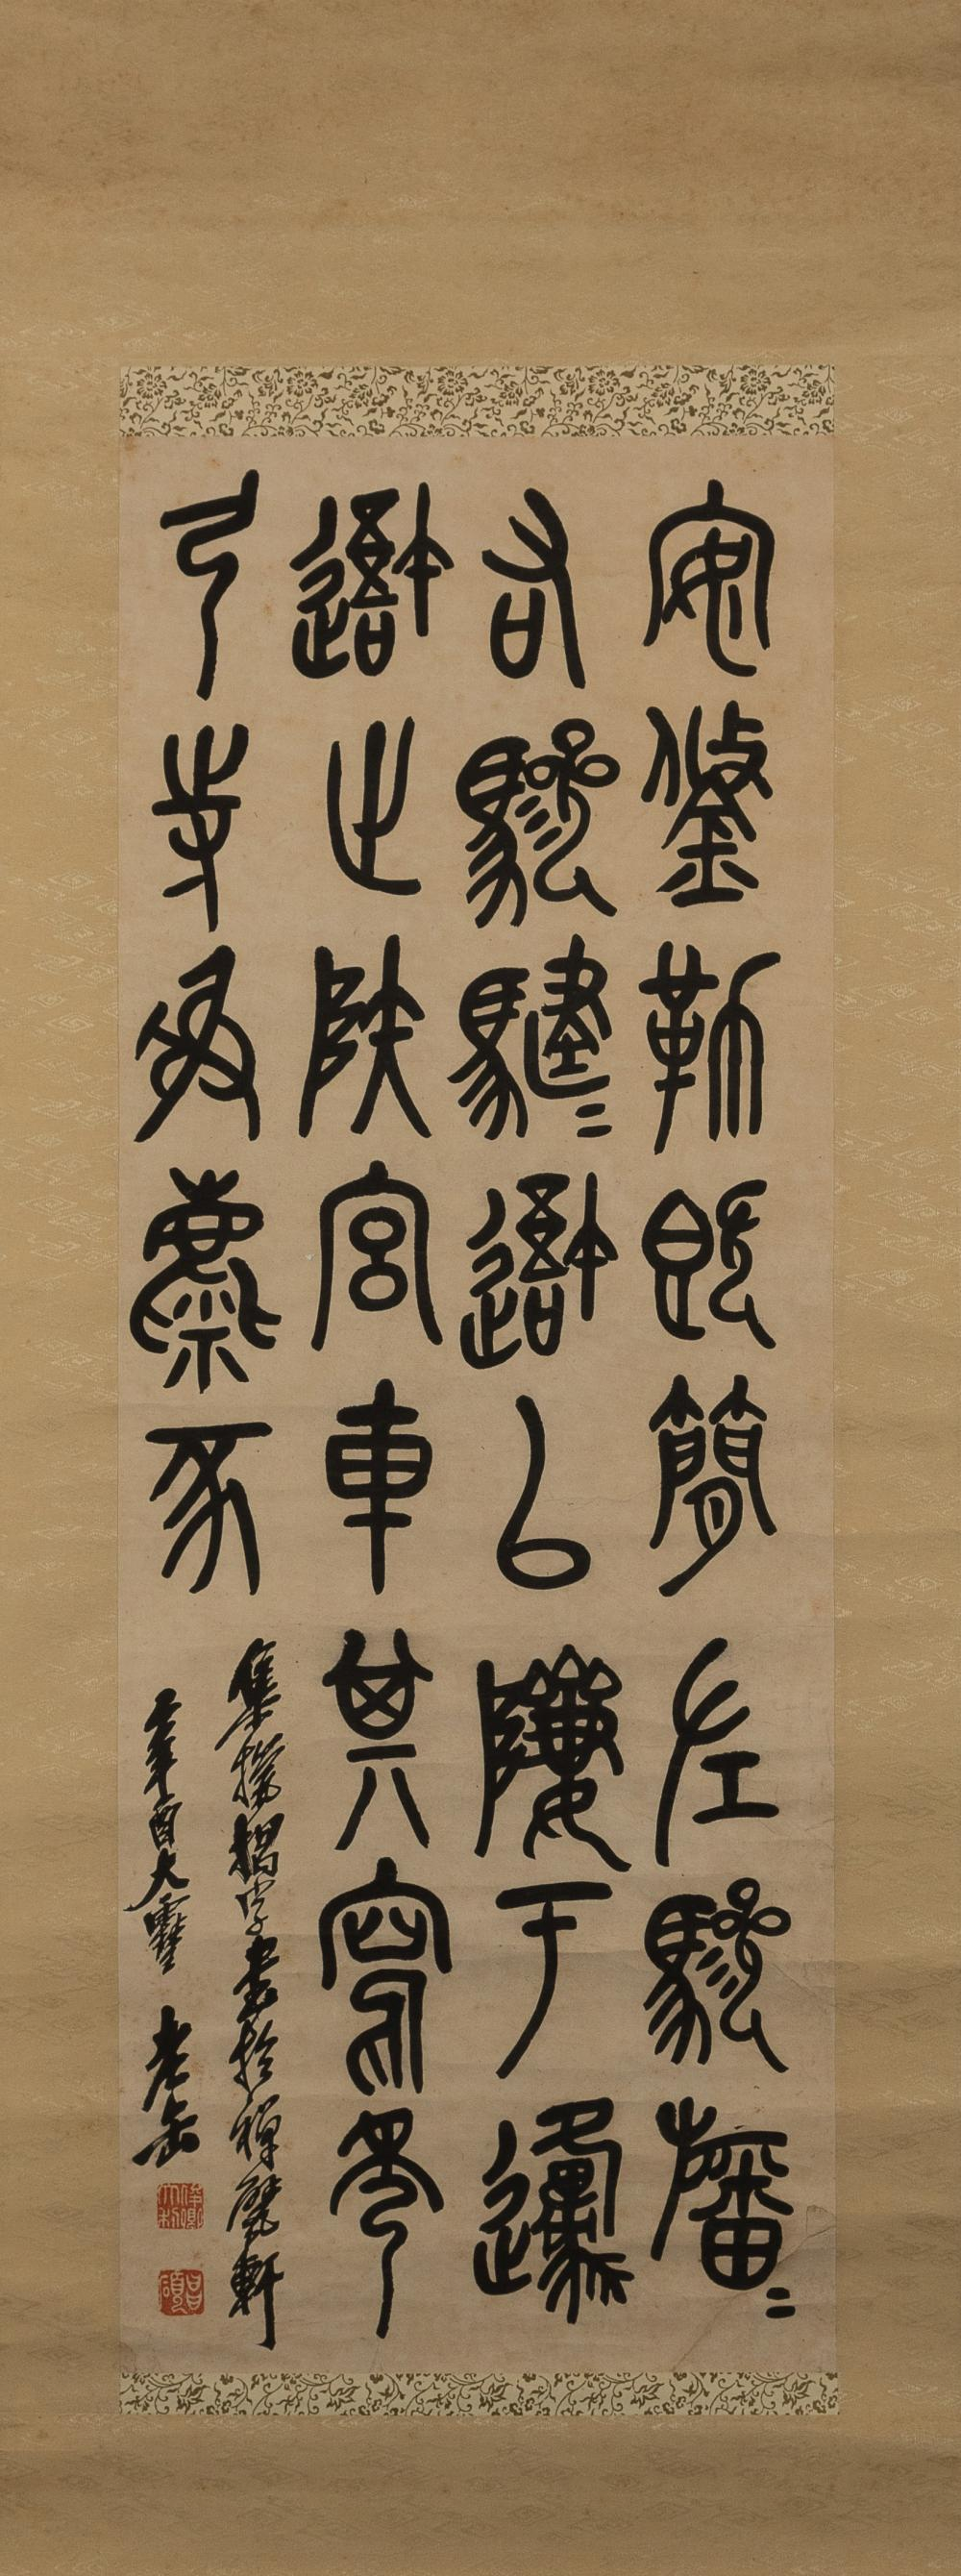 CHINESE CALLIGRAPHY ATTRIBUTED TO WU CHANGSHUO